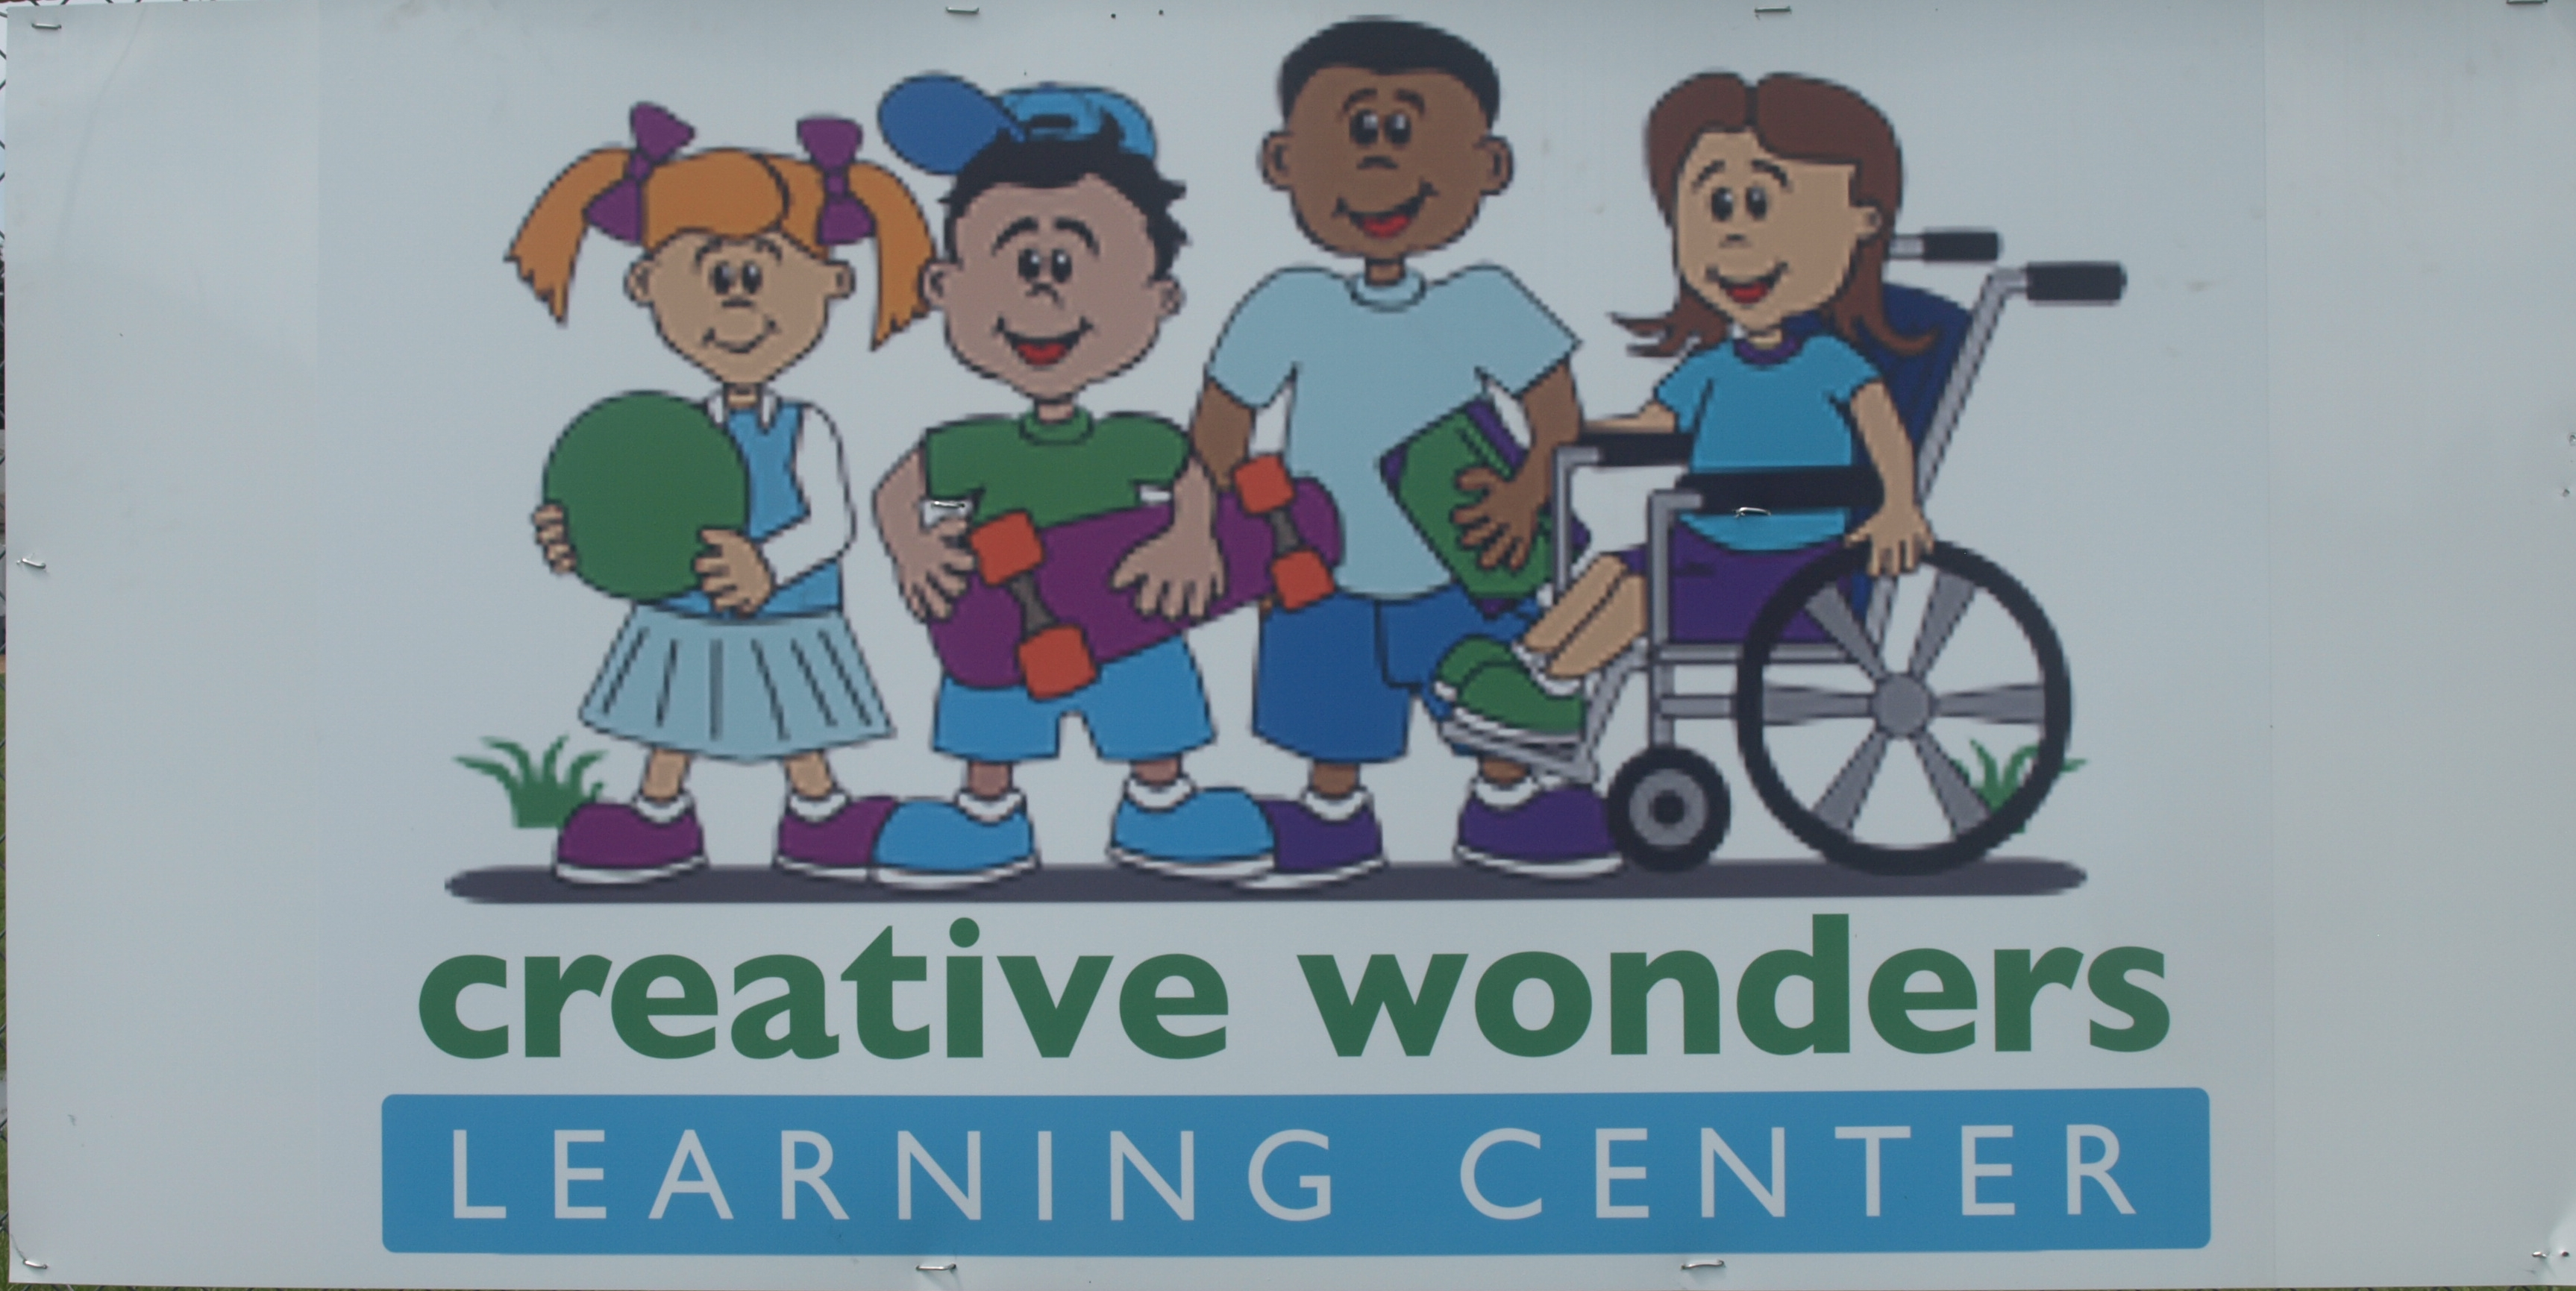 Creative Wonders Learning Center